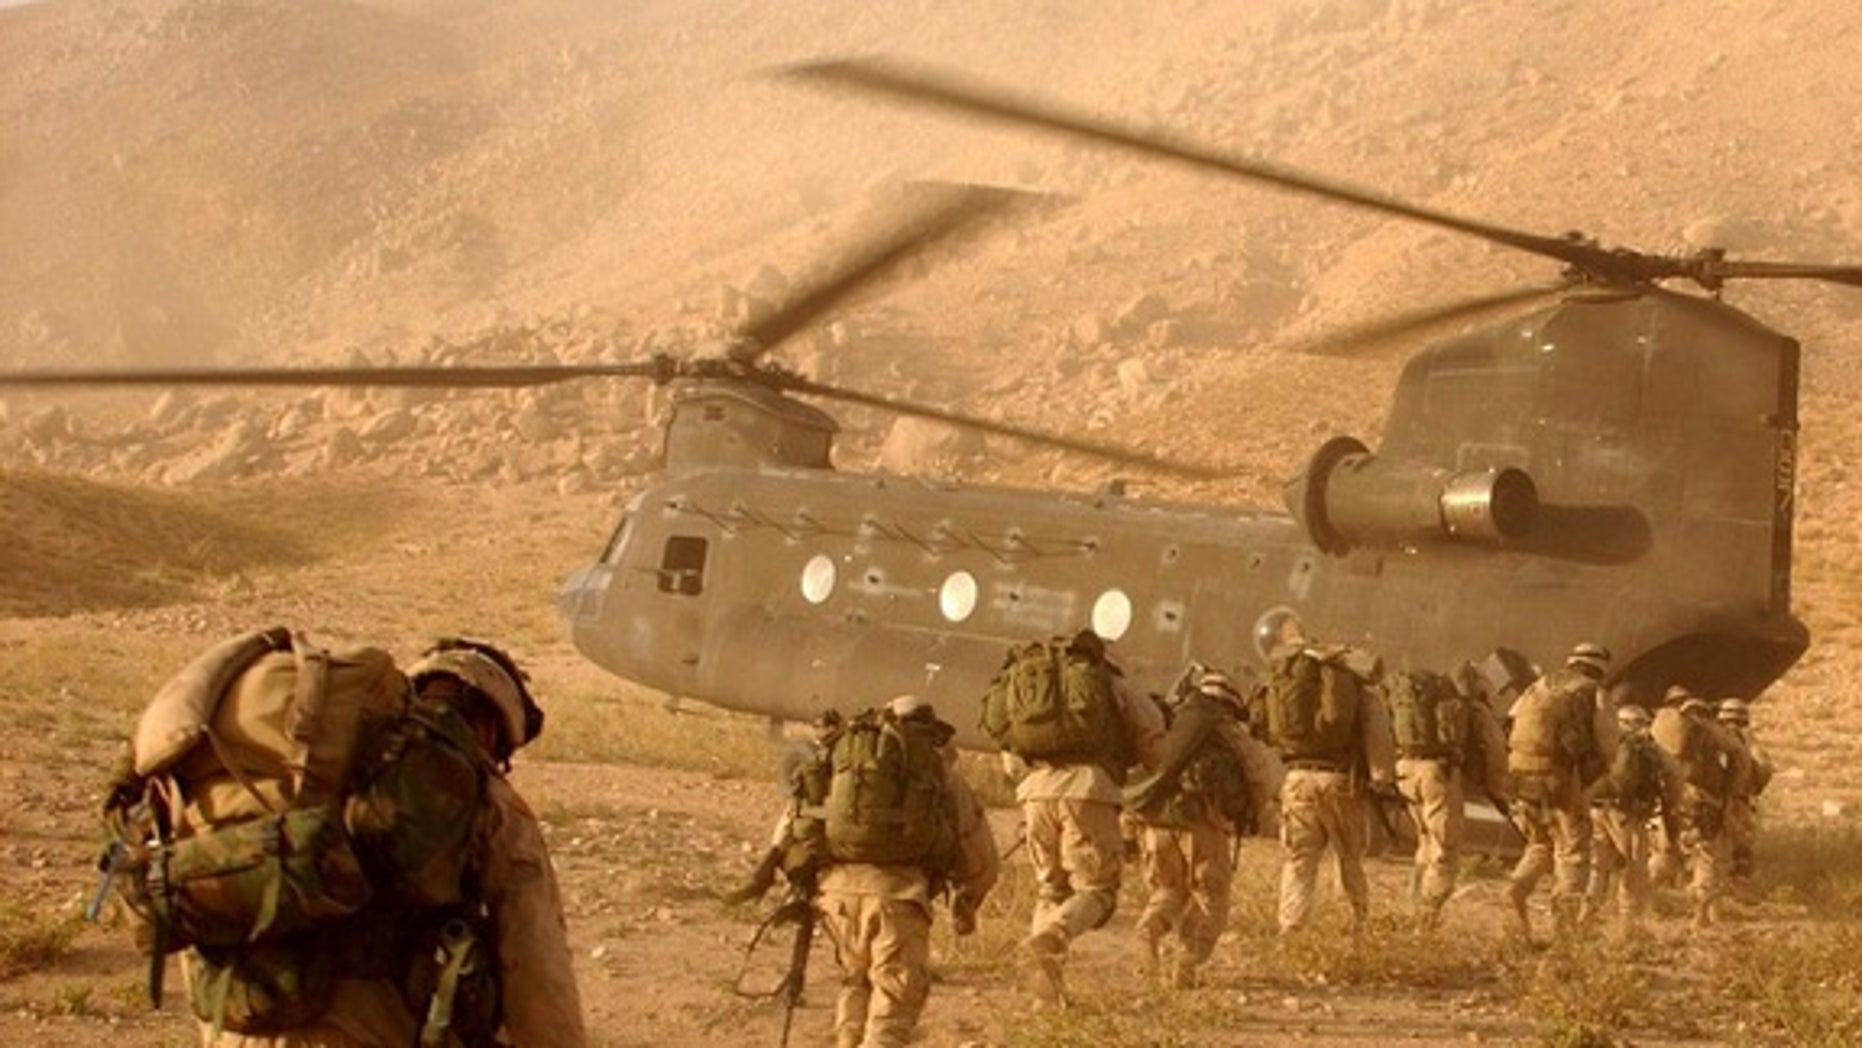 Soliders approach the Chinook helicopter. The researchers' new model could help predict how plasma bubbles could affect future military operations.